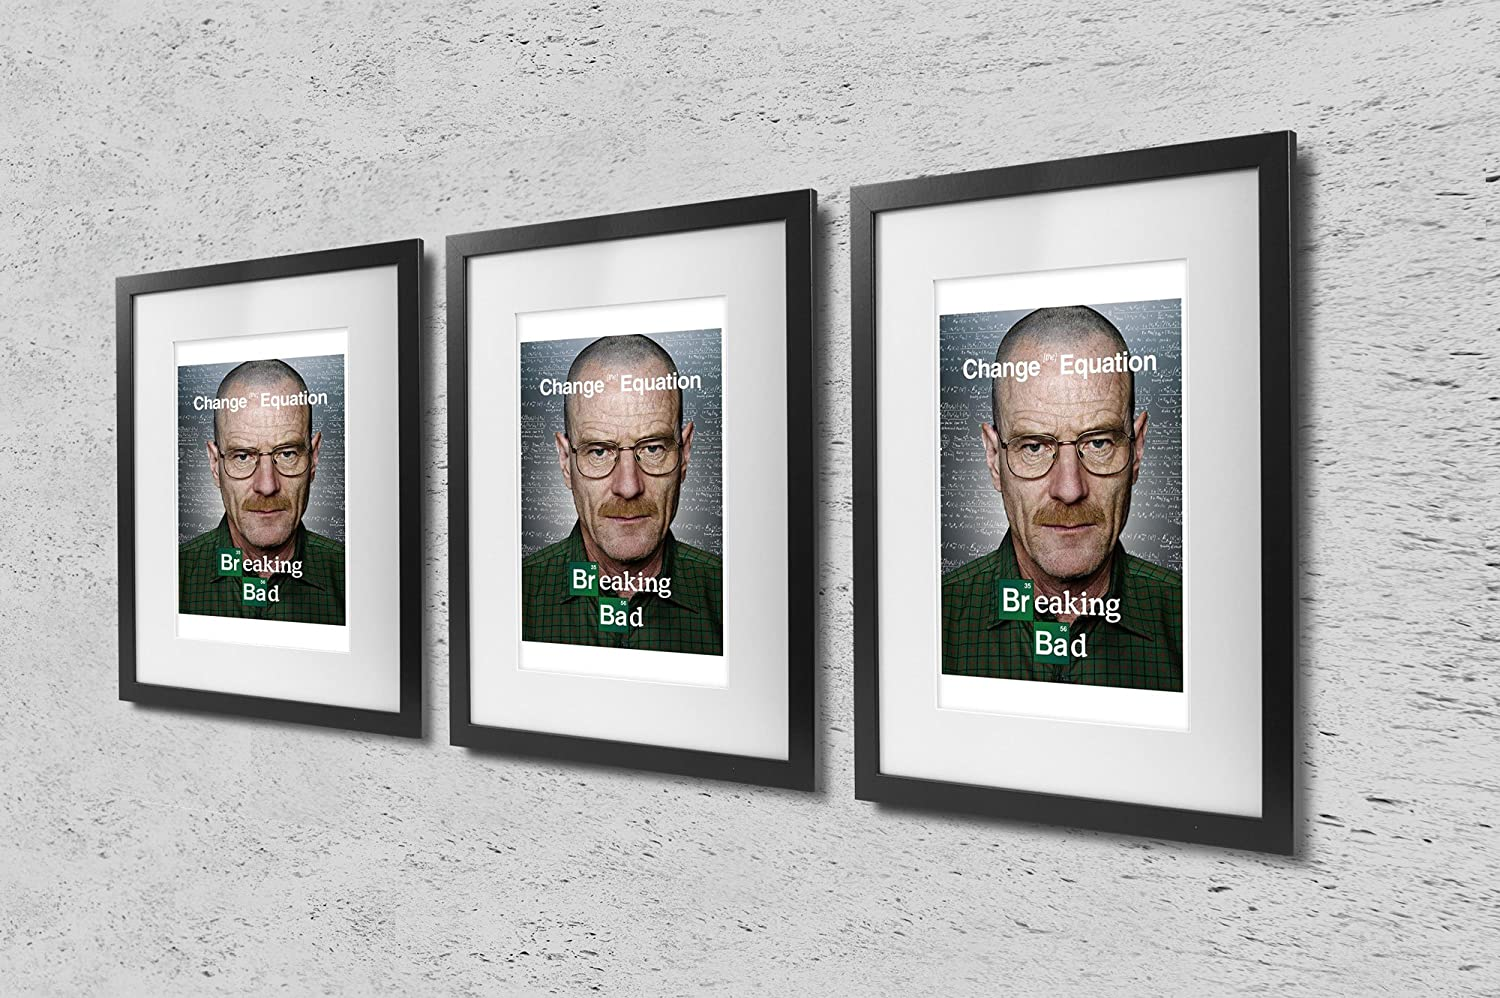 Amazon breaking bad change the equation tv show art print amazon breaking bad change the equation tv show art print tv show memorabilia 11x17 poster vibrant color features bryan cranston anna gunn and jeuxipadfo Choice Image